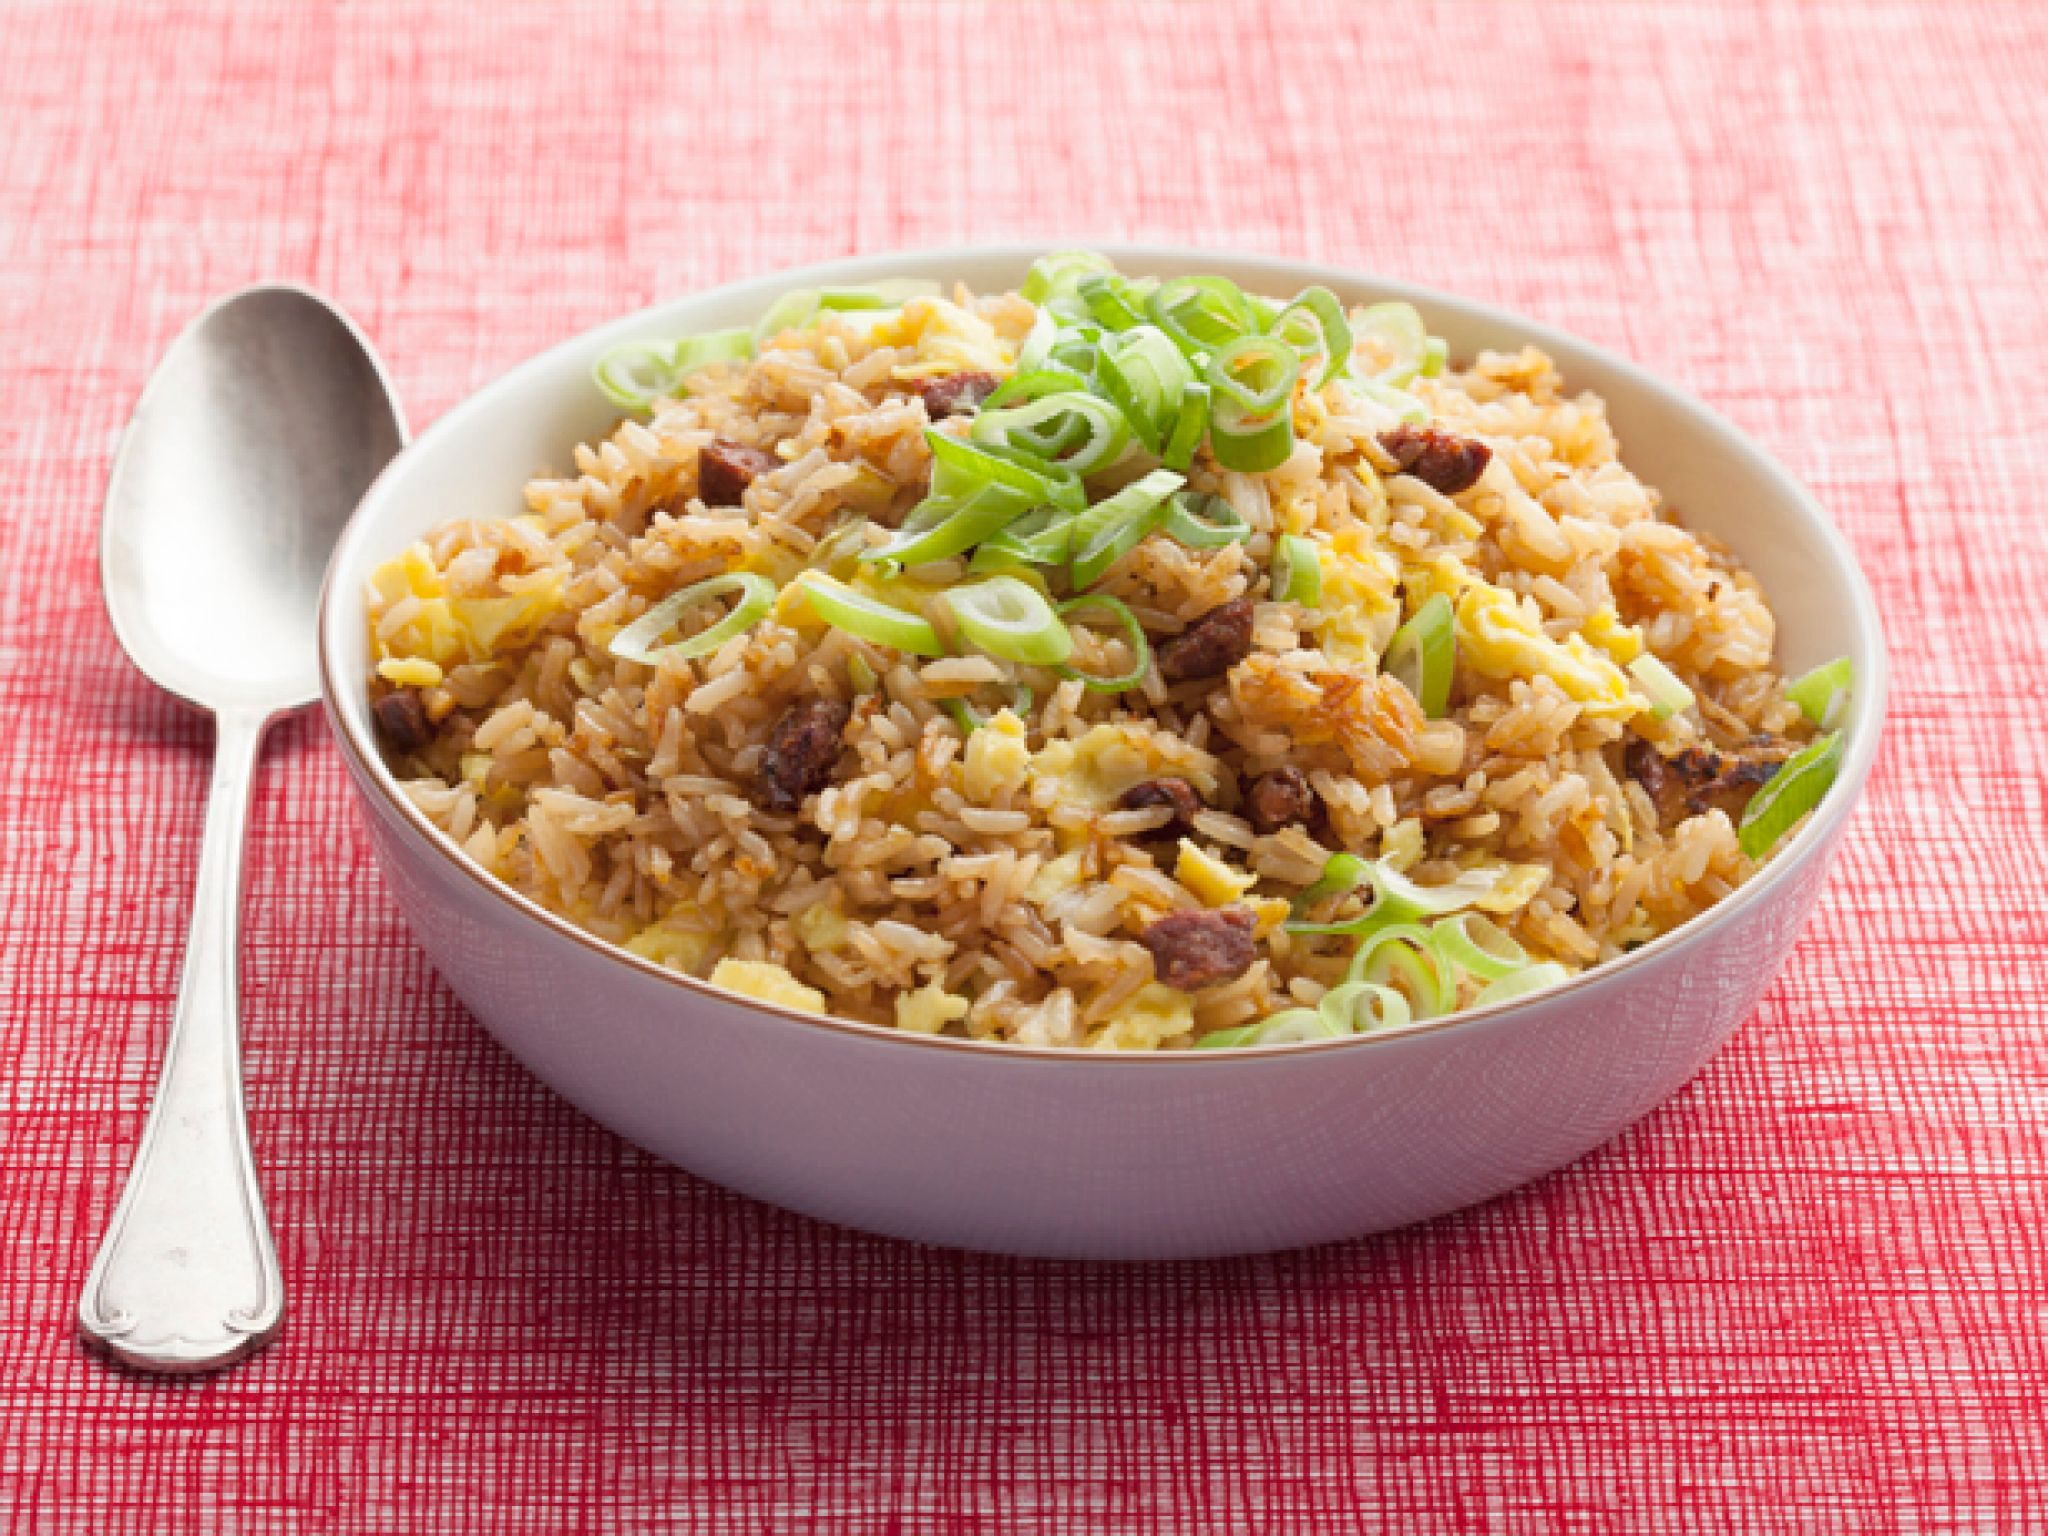 Traditional mandarin fried rice recipe rice recipes fried rice traditional mandarin fried rice mandarin foodchinese recipeschinese forumfinder Gallery